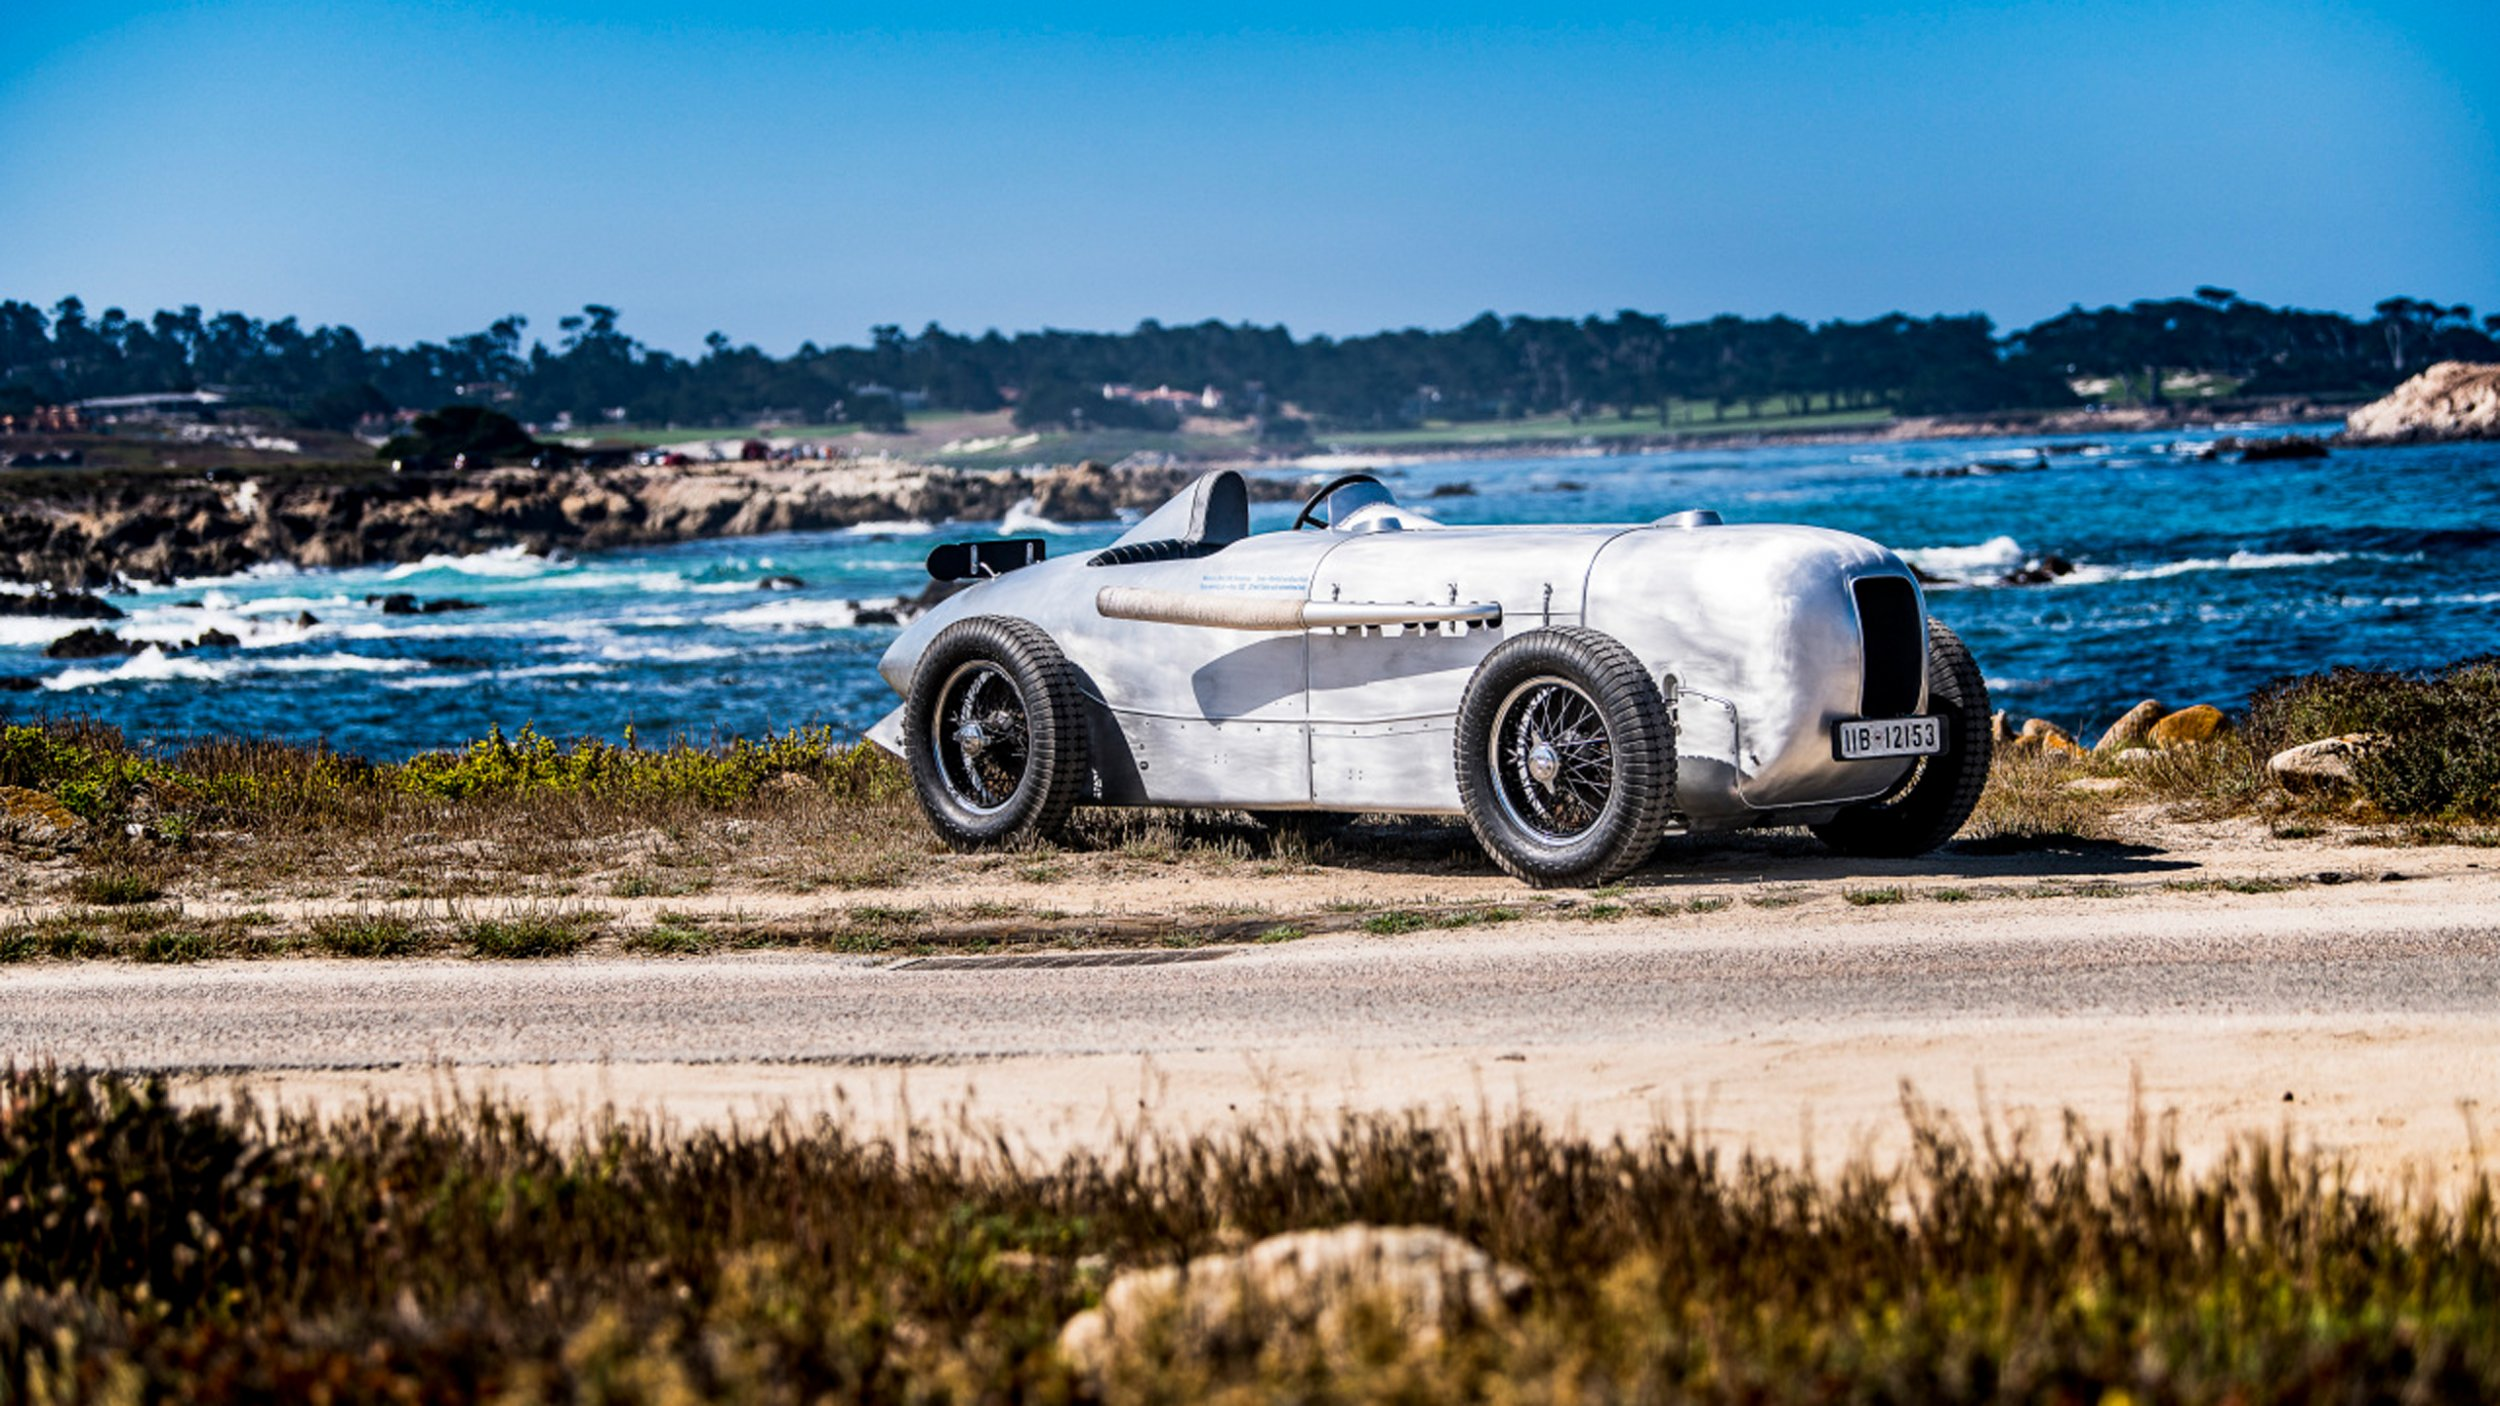 https://cloud.mb-lounge.com/files/HQ-Events/Classic/Oldtimer%20Events/event-calendar-pebble-beach-2560x1440.jpg